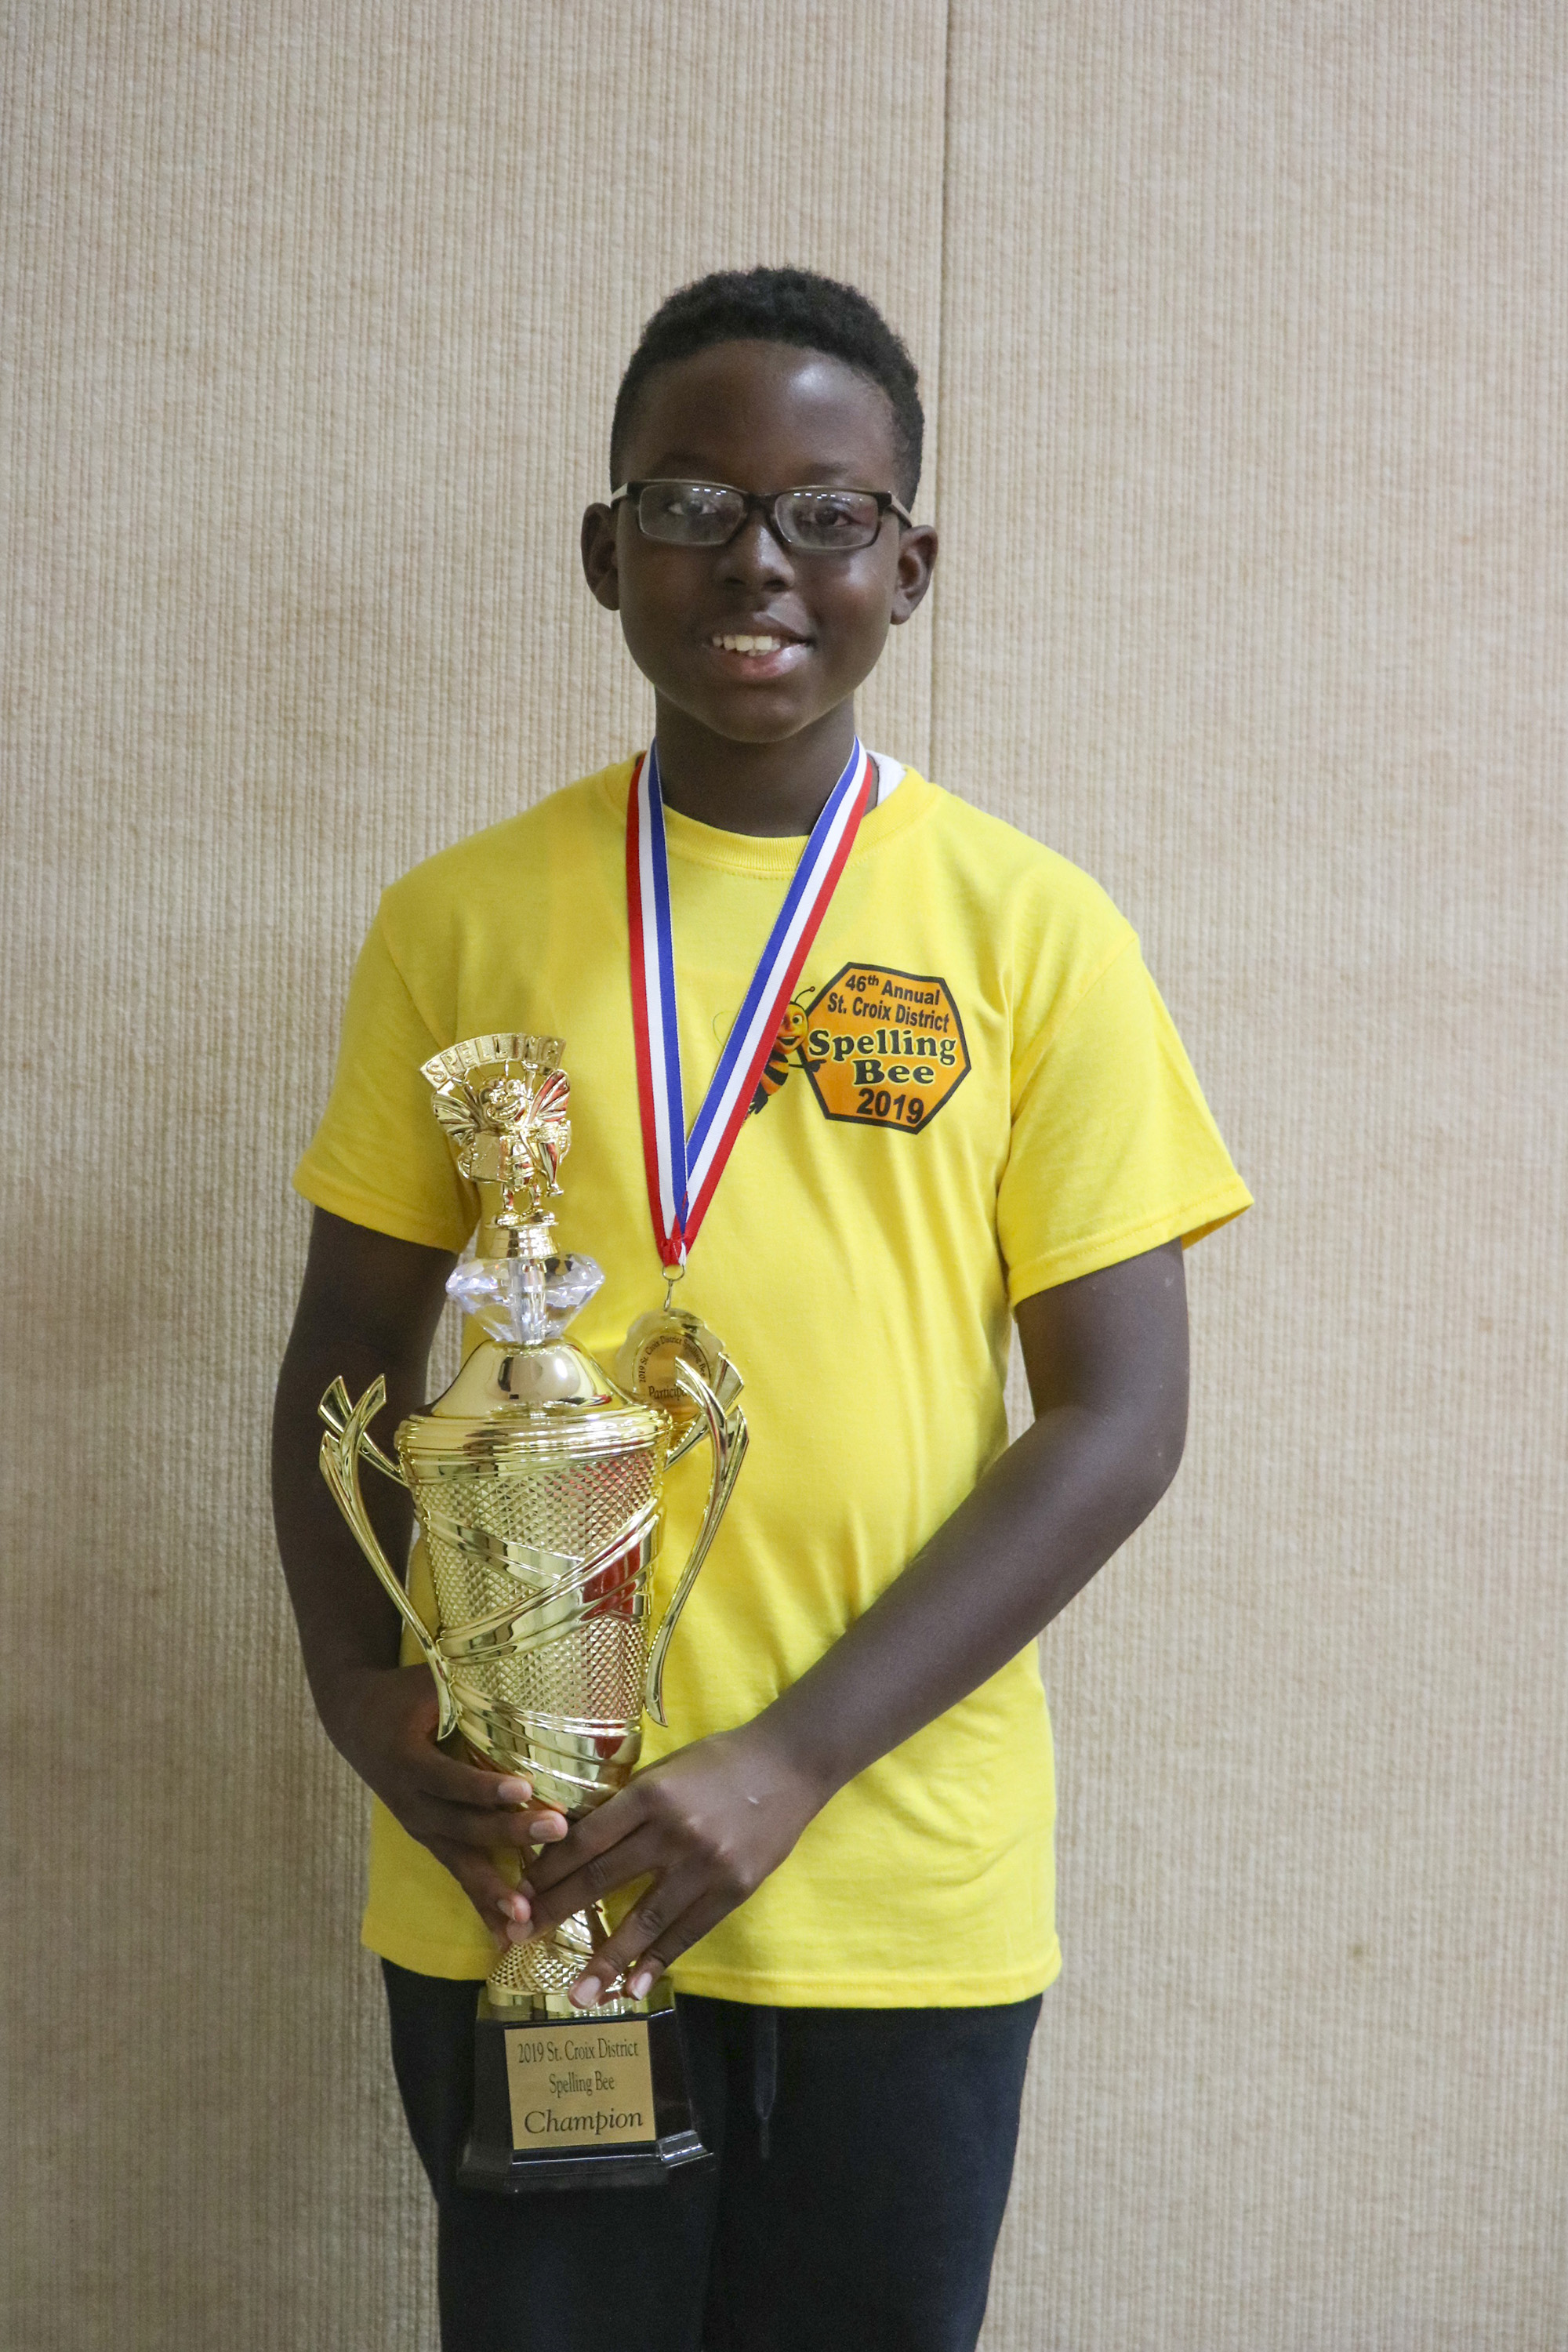 2019 STX District Spelling Bee Winner Michael Atwell01.JPG